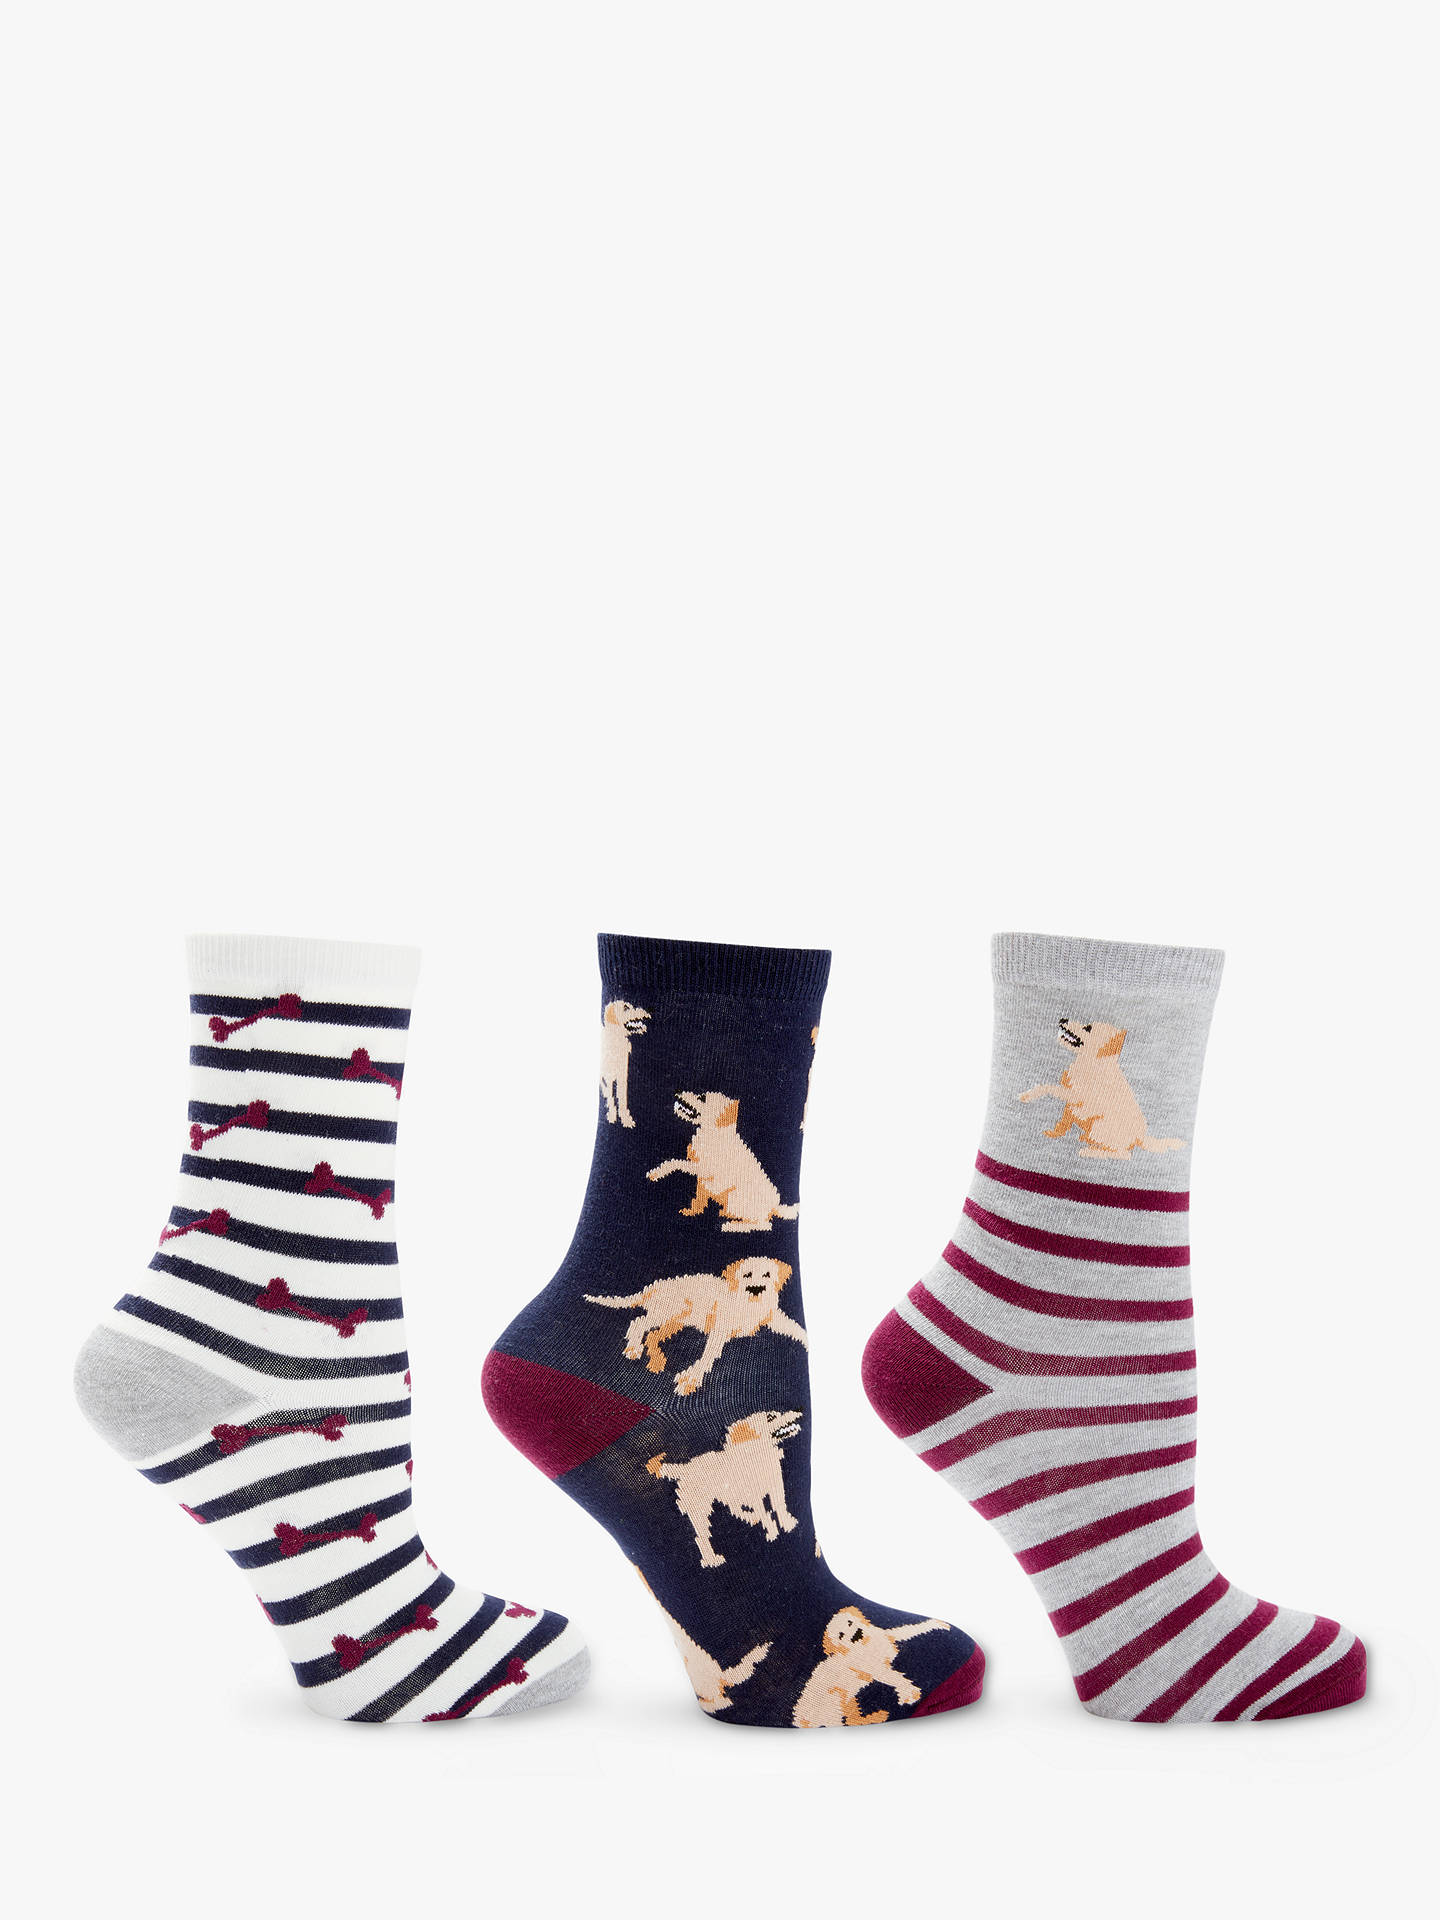 BuyJohn Lewis & Partners Dog and Bone Ankle Socks, Pack of 3, Multi Online at johnlewis.com